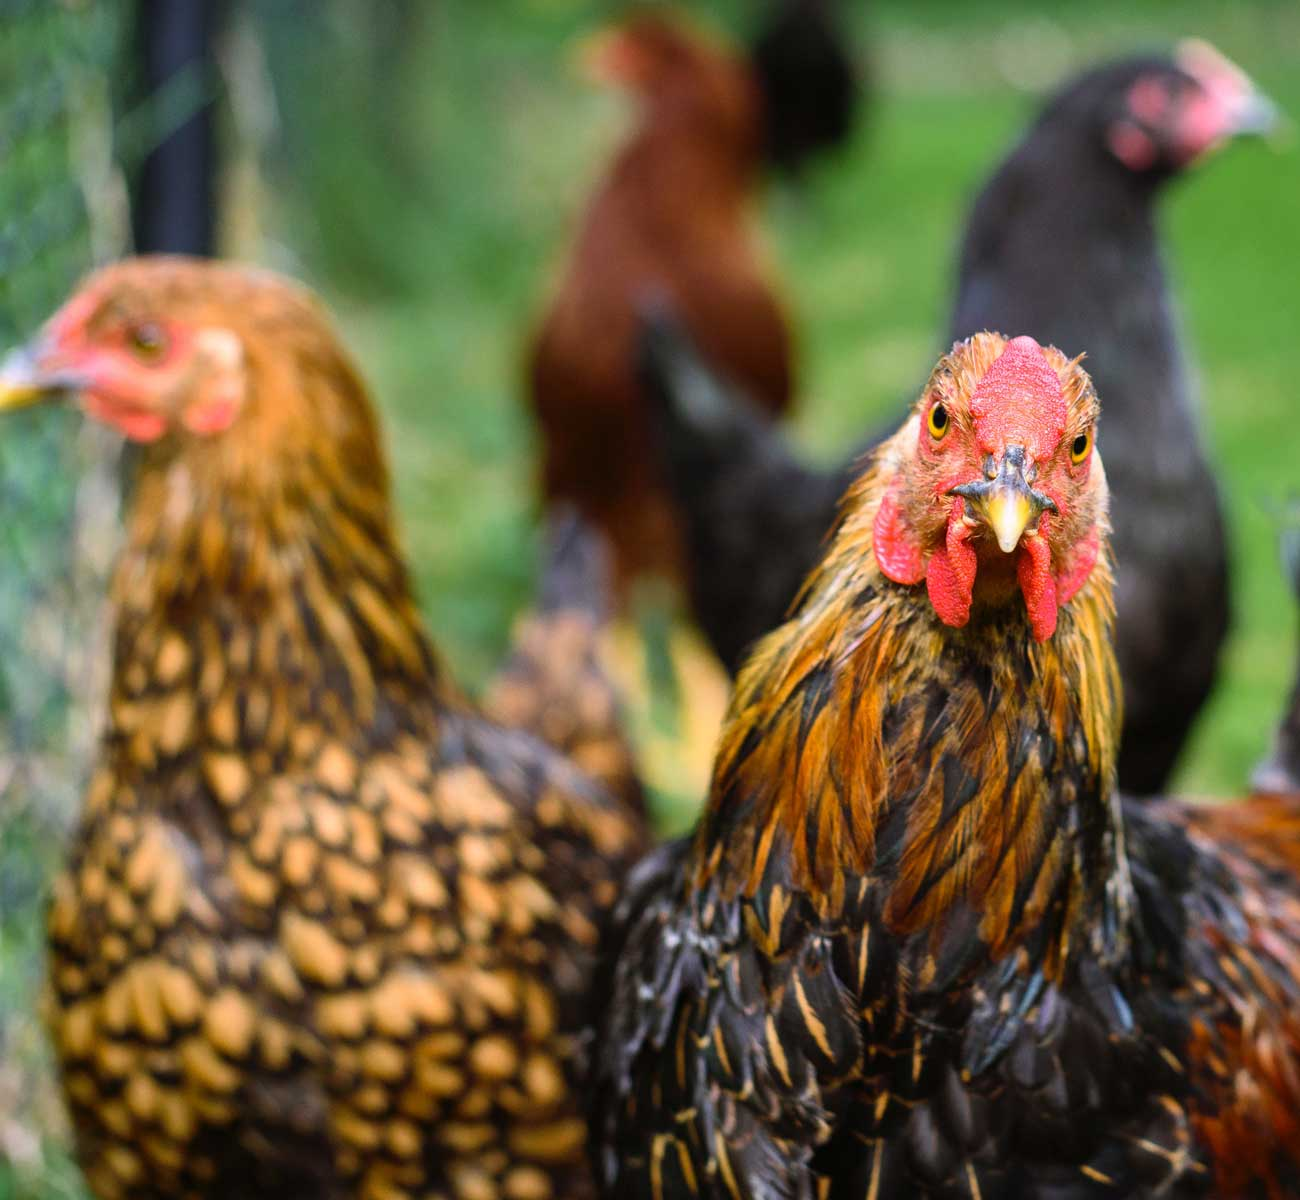 Rosewater Farm and Dairy • Our products: Pastured Chickens